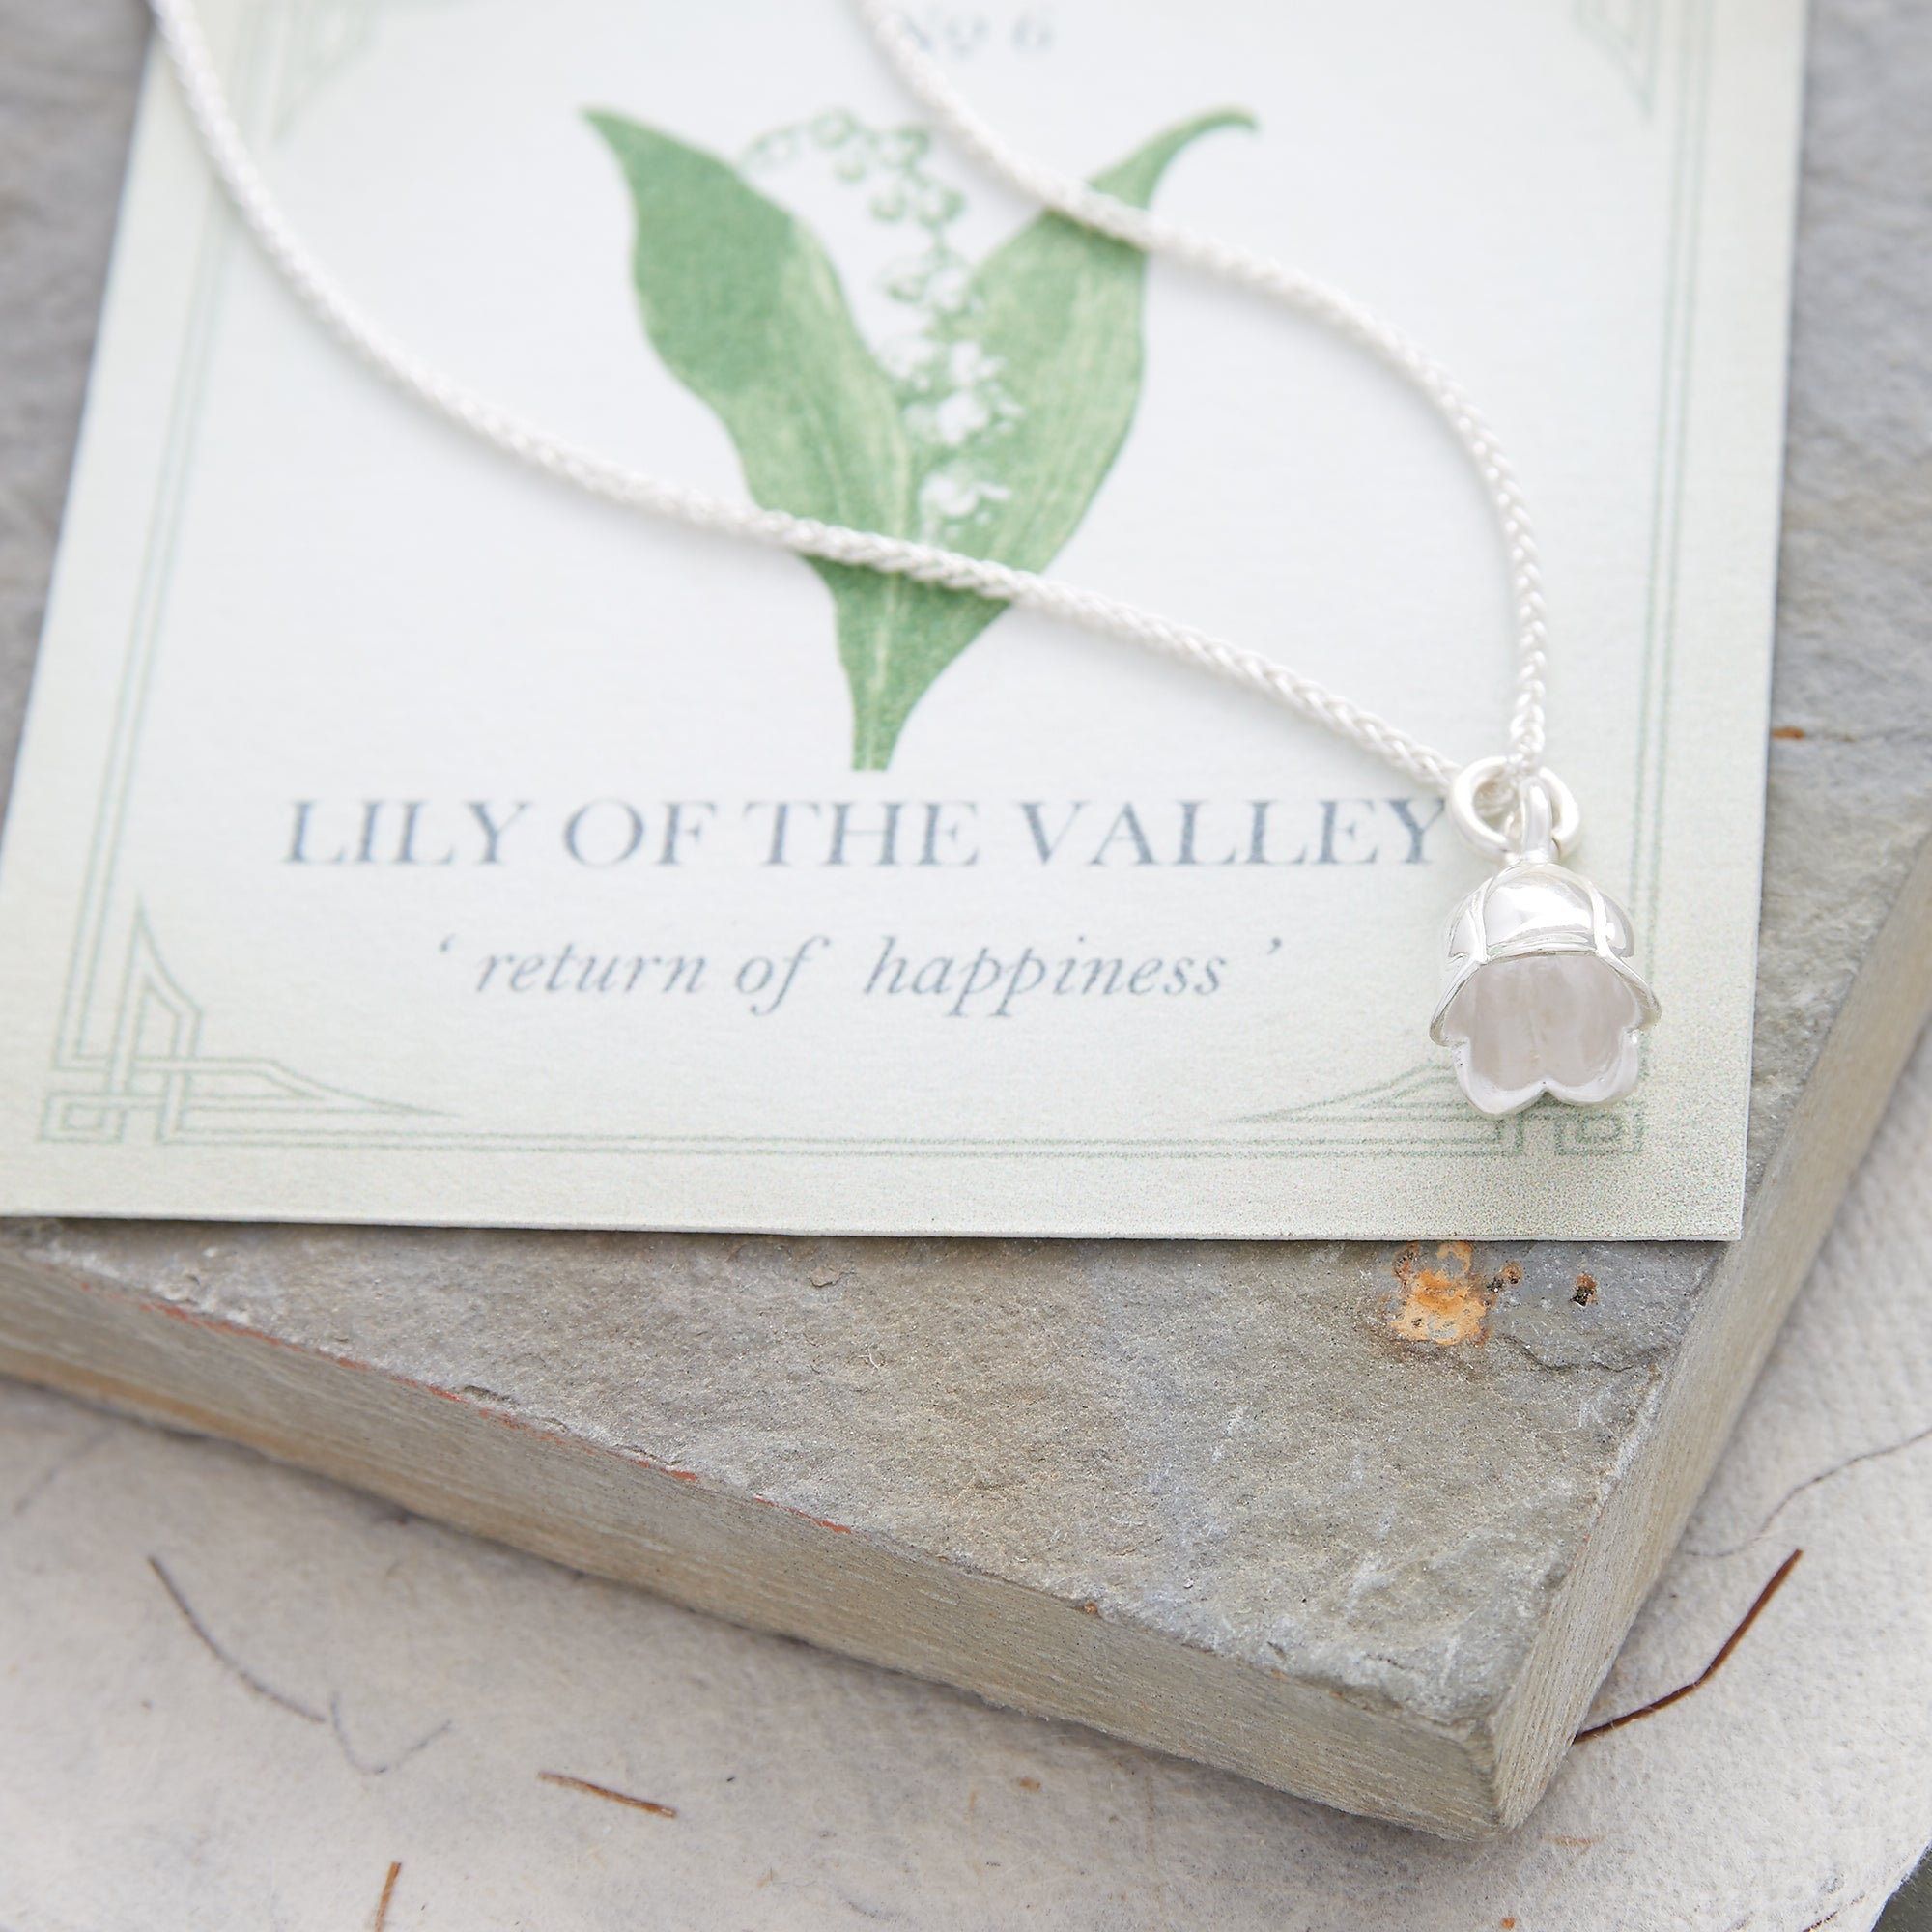 Lily Of The Valley Flower Silver Charm For Bracelet or Necklace from Scarlett Jewellery